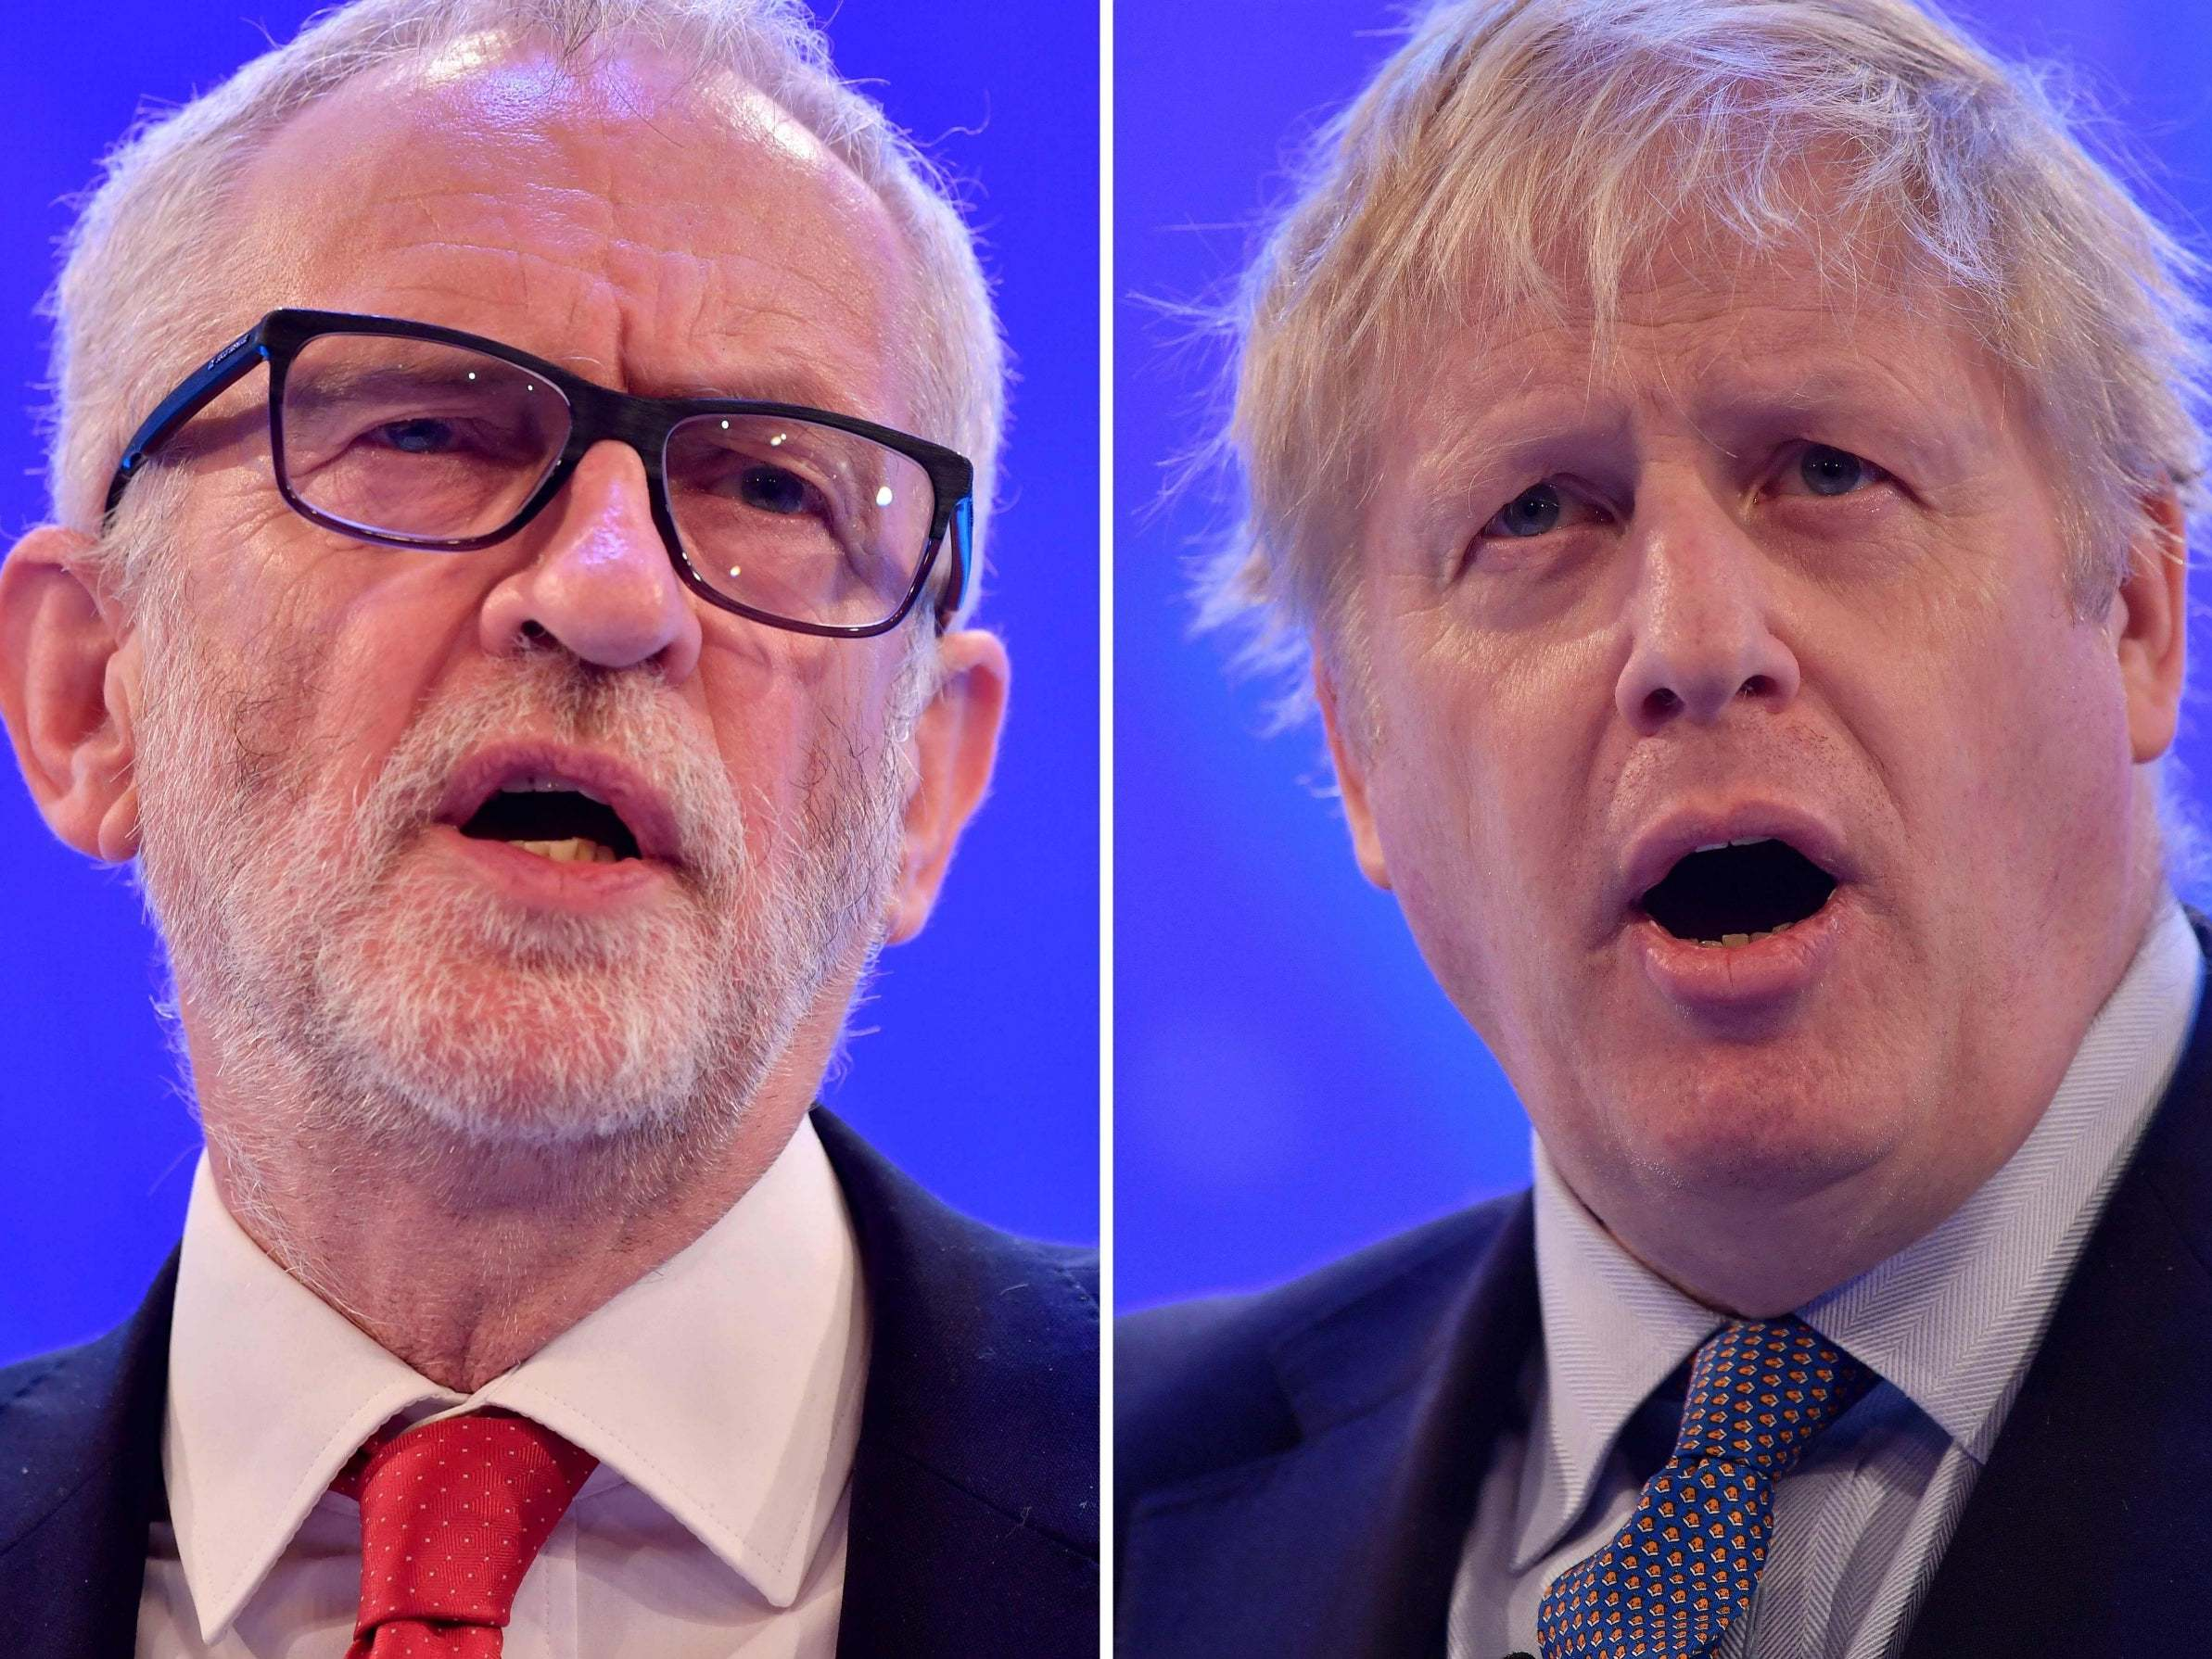 Election debate: Boris Johnson and Corbyn go head to head on TV for first time tonight - follow live